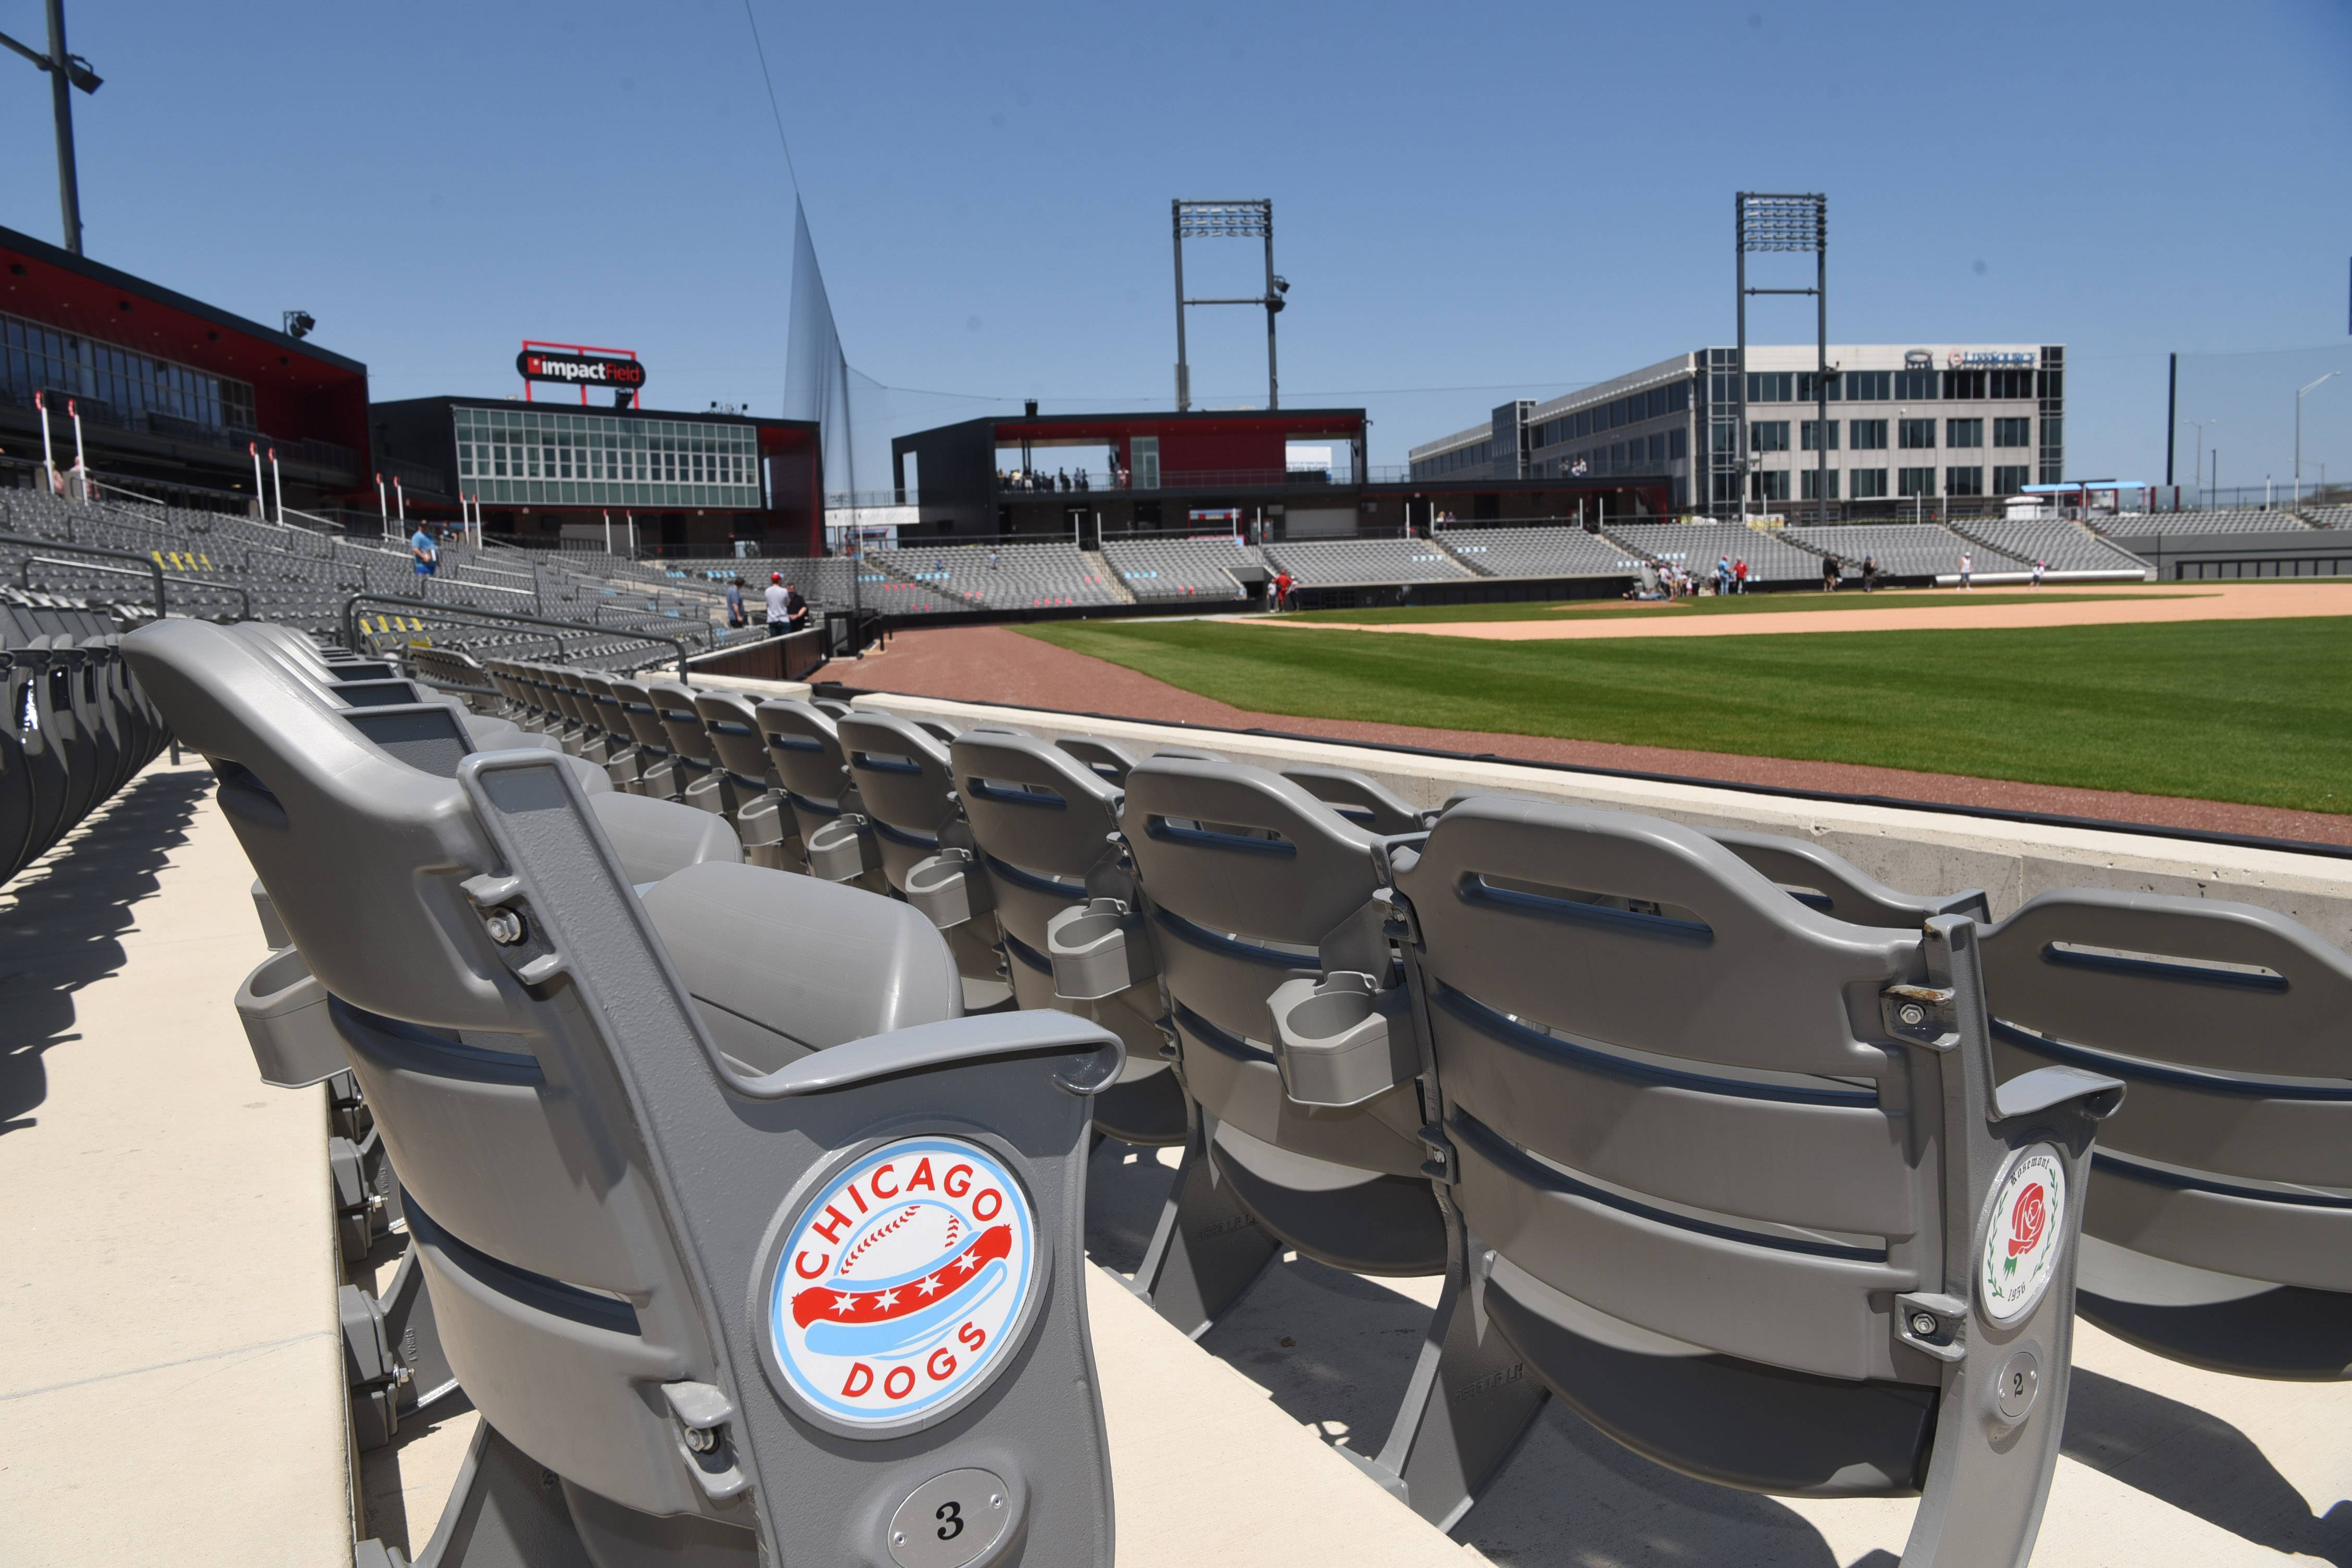 Here's a wiew from the seats along the right field line at Impact Field in Rosemont, the new stadium built for the Chicago Dogs baseball team. The Dogs will host the Kansas City T-Bones in their inaugural home opener on Friday.